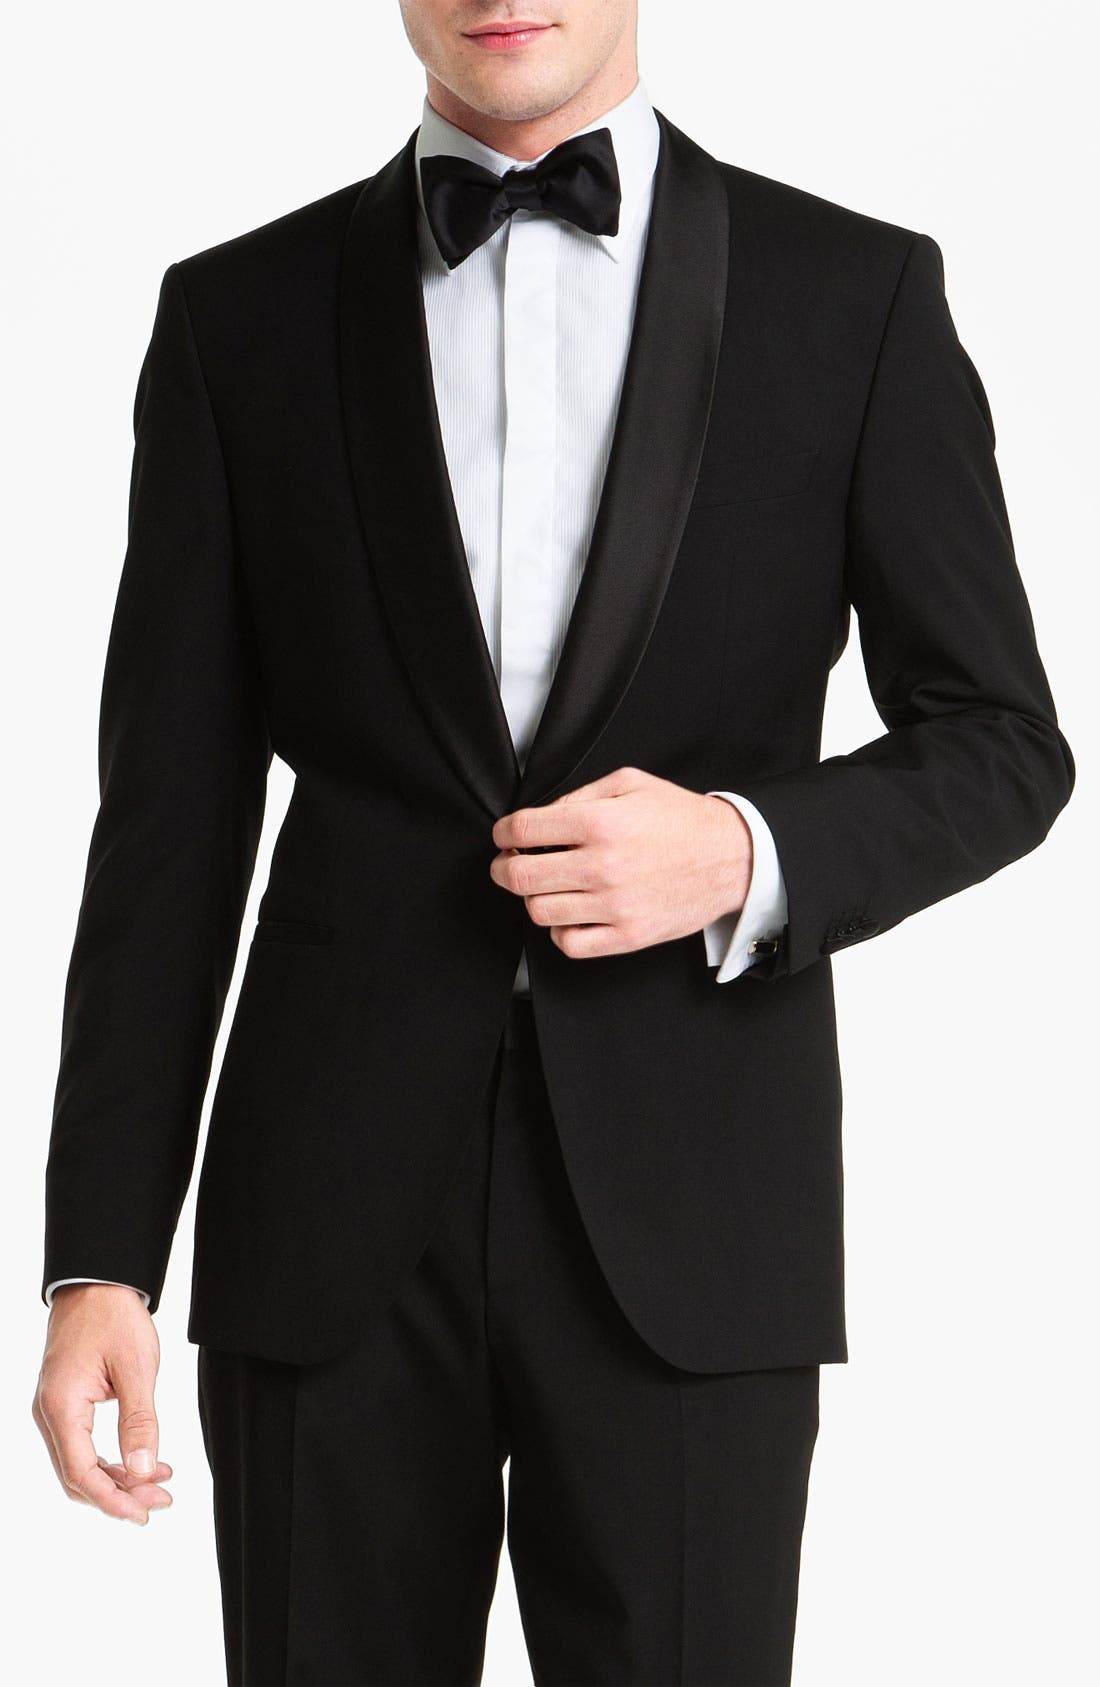 ZZDNUHUGO BOSS,                             BOSS 'Sky Gala' Shawl Lapel Tuxedo,                             Alternate thumbnail 4, color,                             001